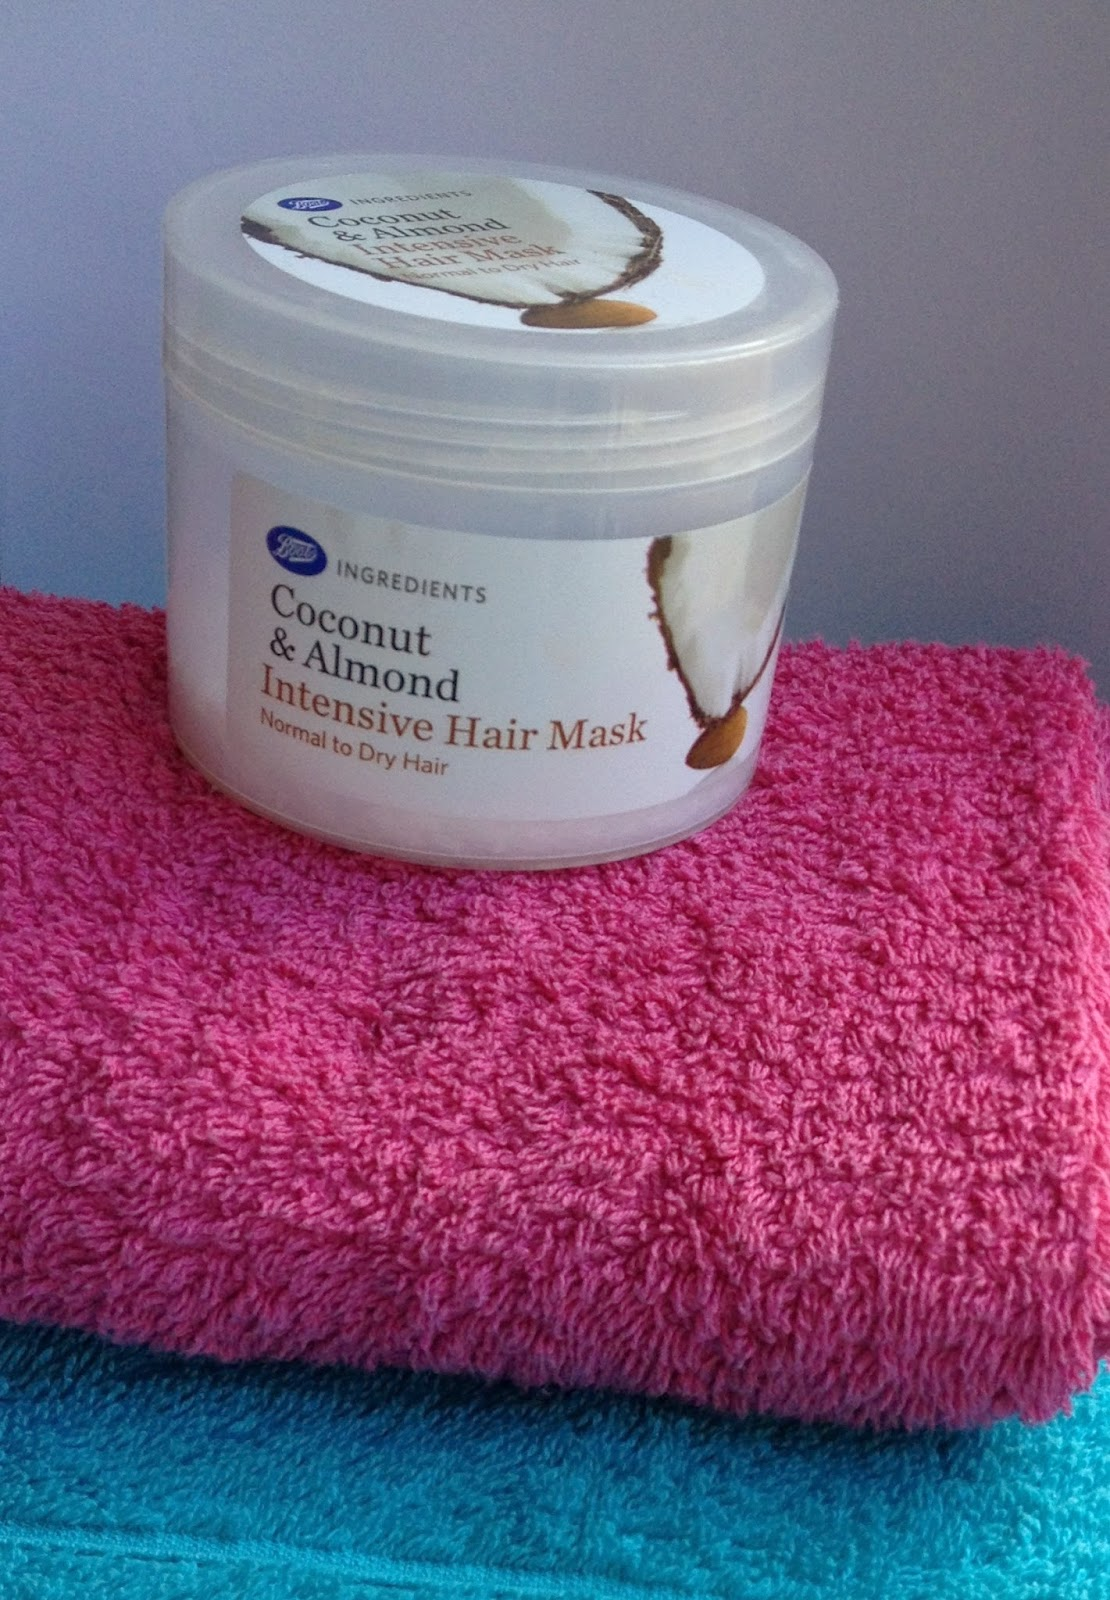 boots-coconut-and-almond-intensive-hair-mask-review